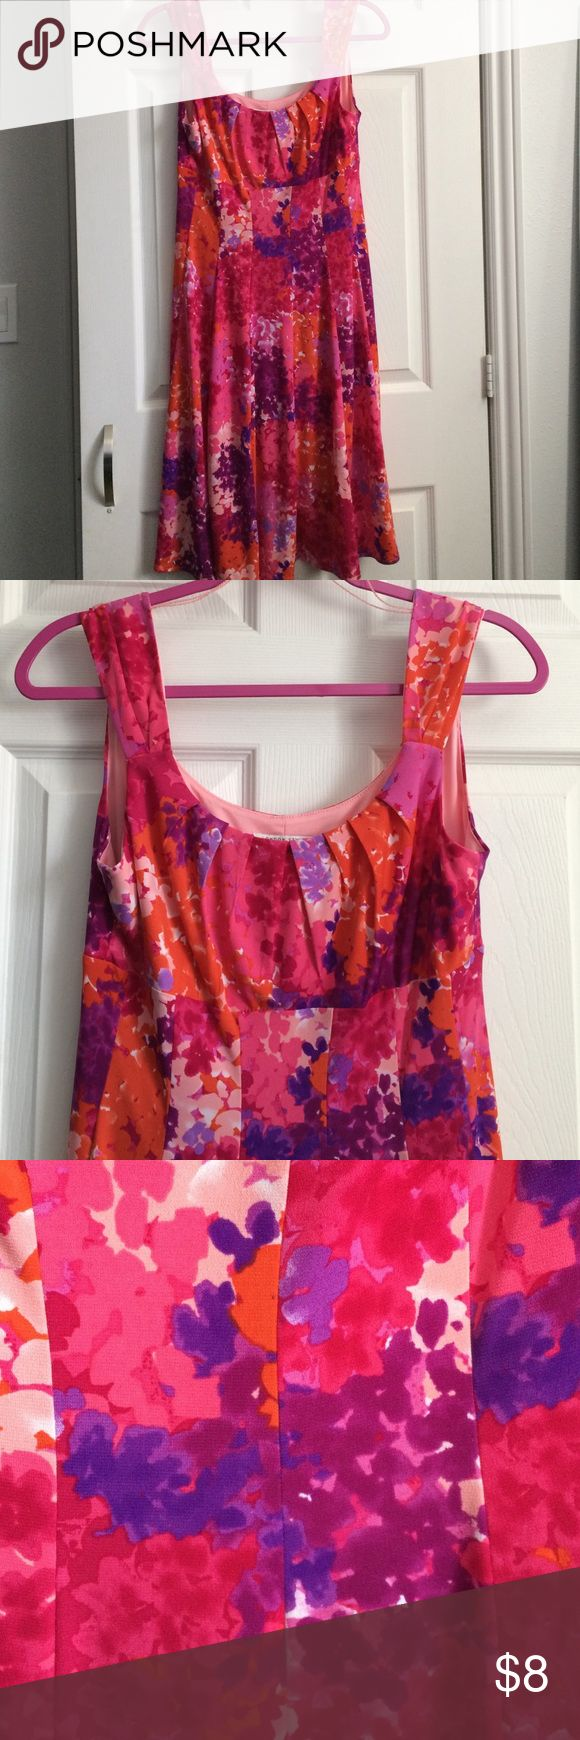 Flowing sleeveless pink, coral, purple dress Very pretty feminine flowing dress. Great for a spring or summer event, or any season if you're in California! Pink, purple, orange and coral colors in a beautiful pattern. Panels, fit and hemline are very flattering and easy to wear. Light stretch, pink lining. Gently used. Purchased at Macy's. Ask for a custom bundle for the best discount! Dresses